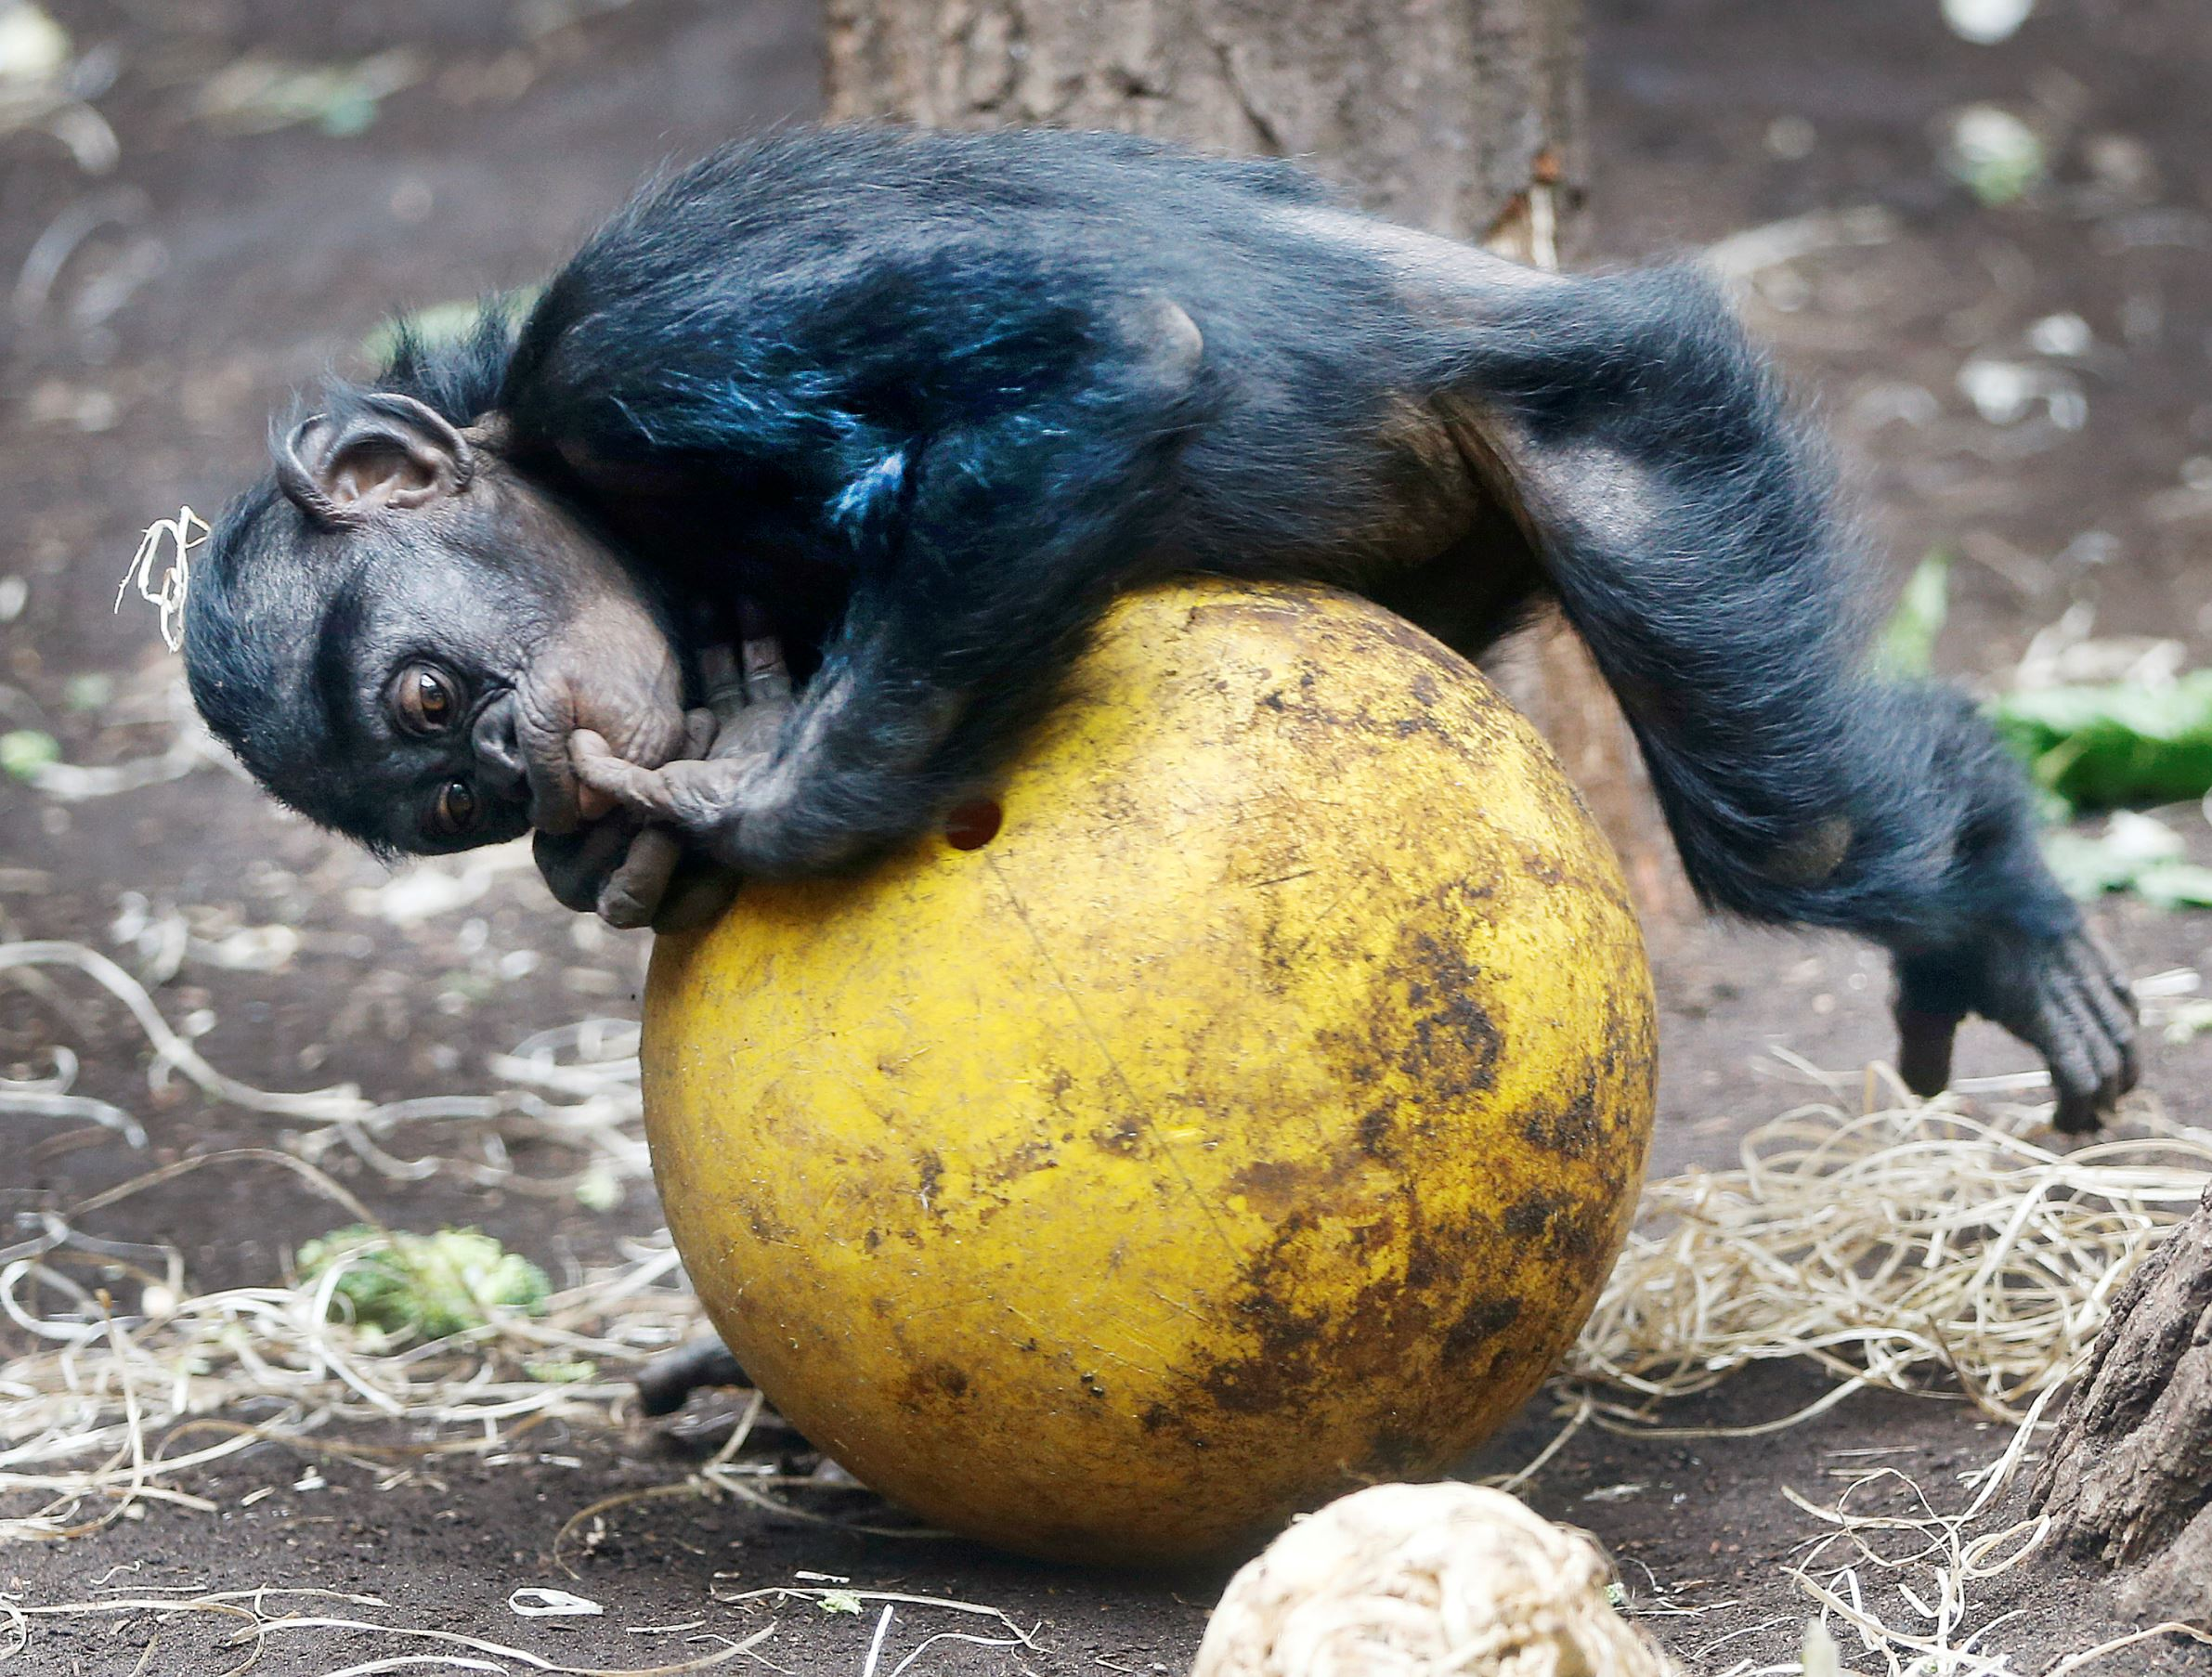 Слайд 4 из 67: A chimpanzee cub practices on a ball on the day of the opening of the Rio 2016 Olympics at the zoo in Frankfurt, Germany, Friday, Aug. 5, 2016. (AP Photo/Michael Probst)